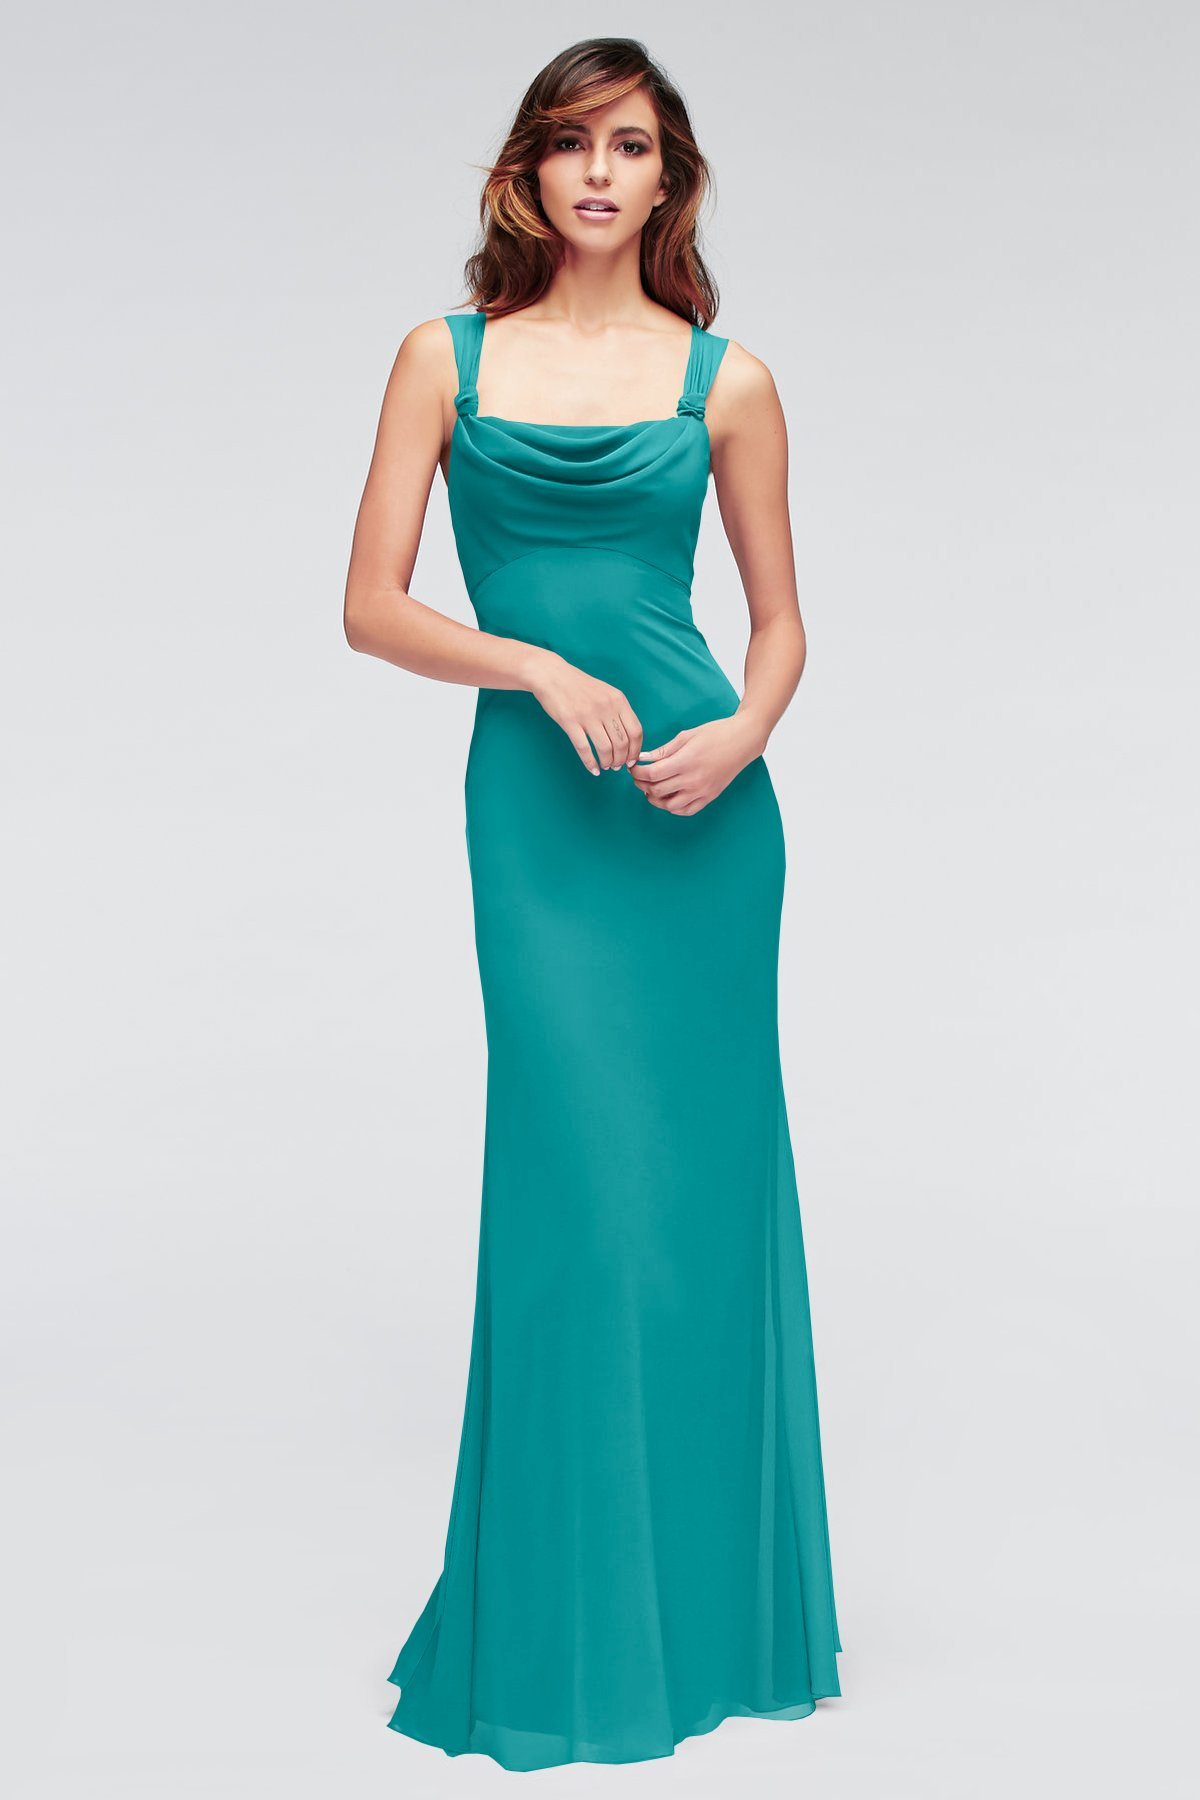 Aqua Green Long Bridesmaid Dress 2017